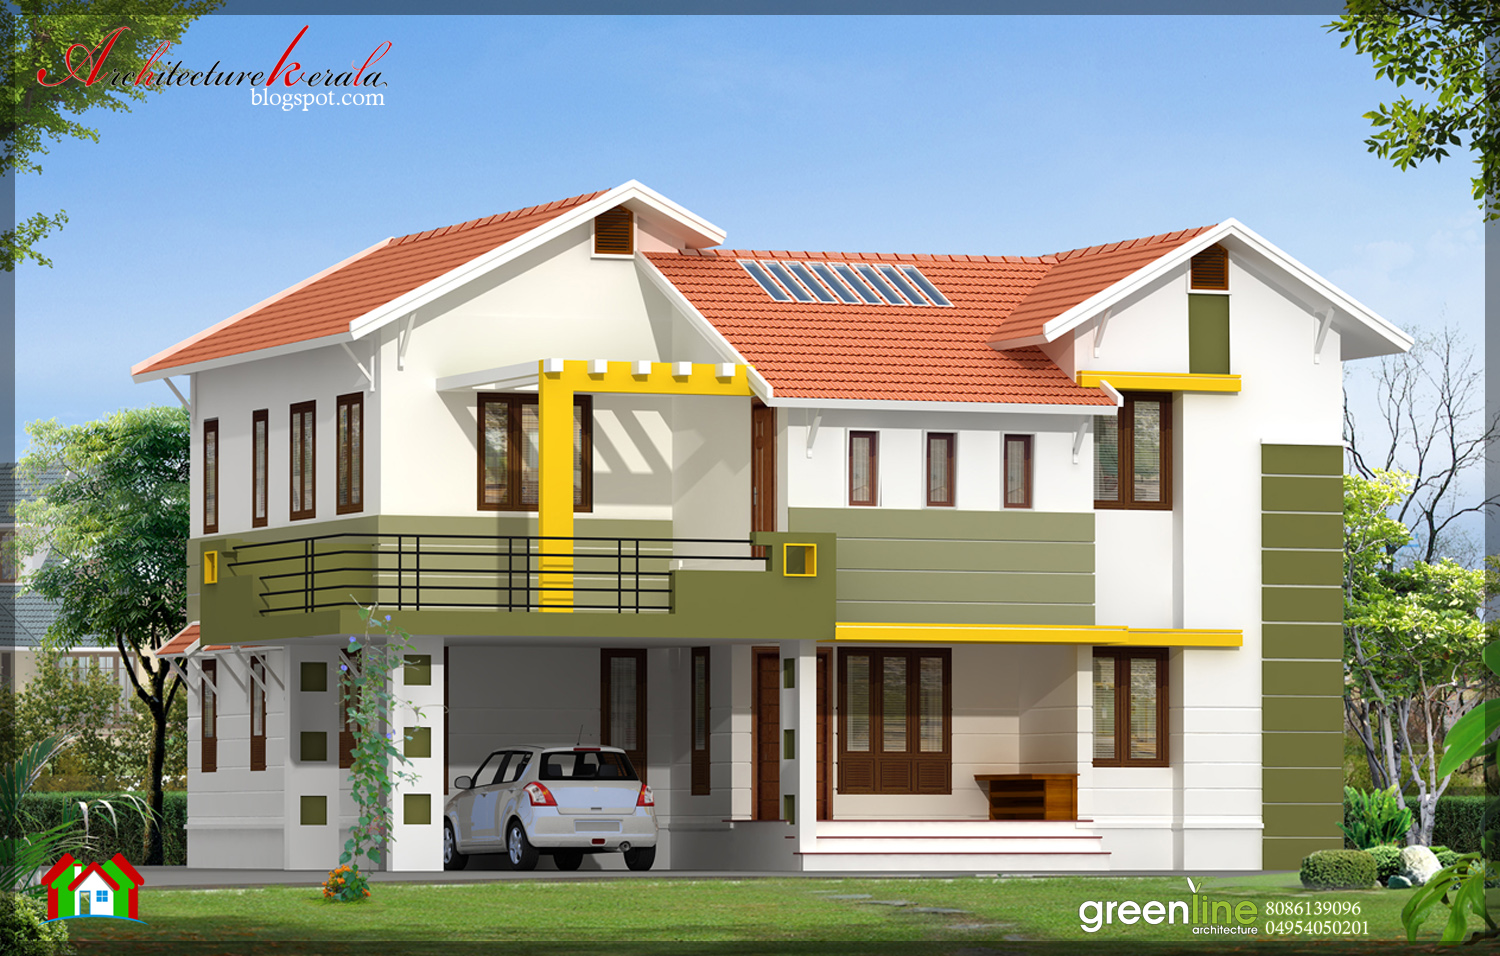 Architecture kerala 4 bhk contemporary style indian home for Kerala home designs pictures